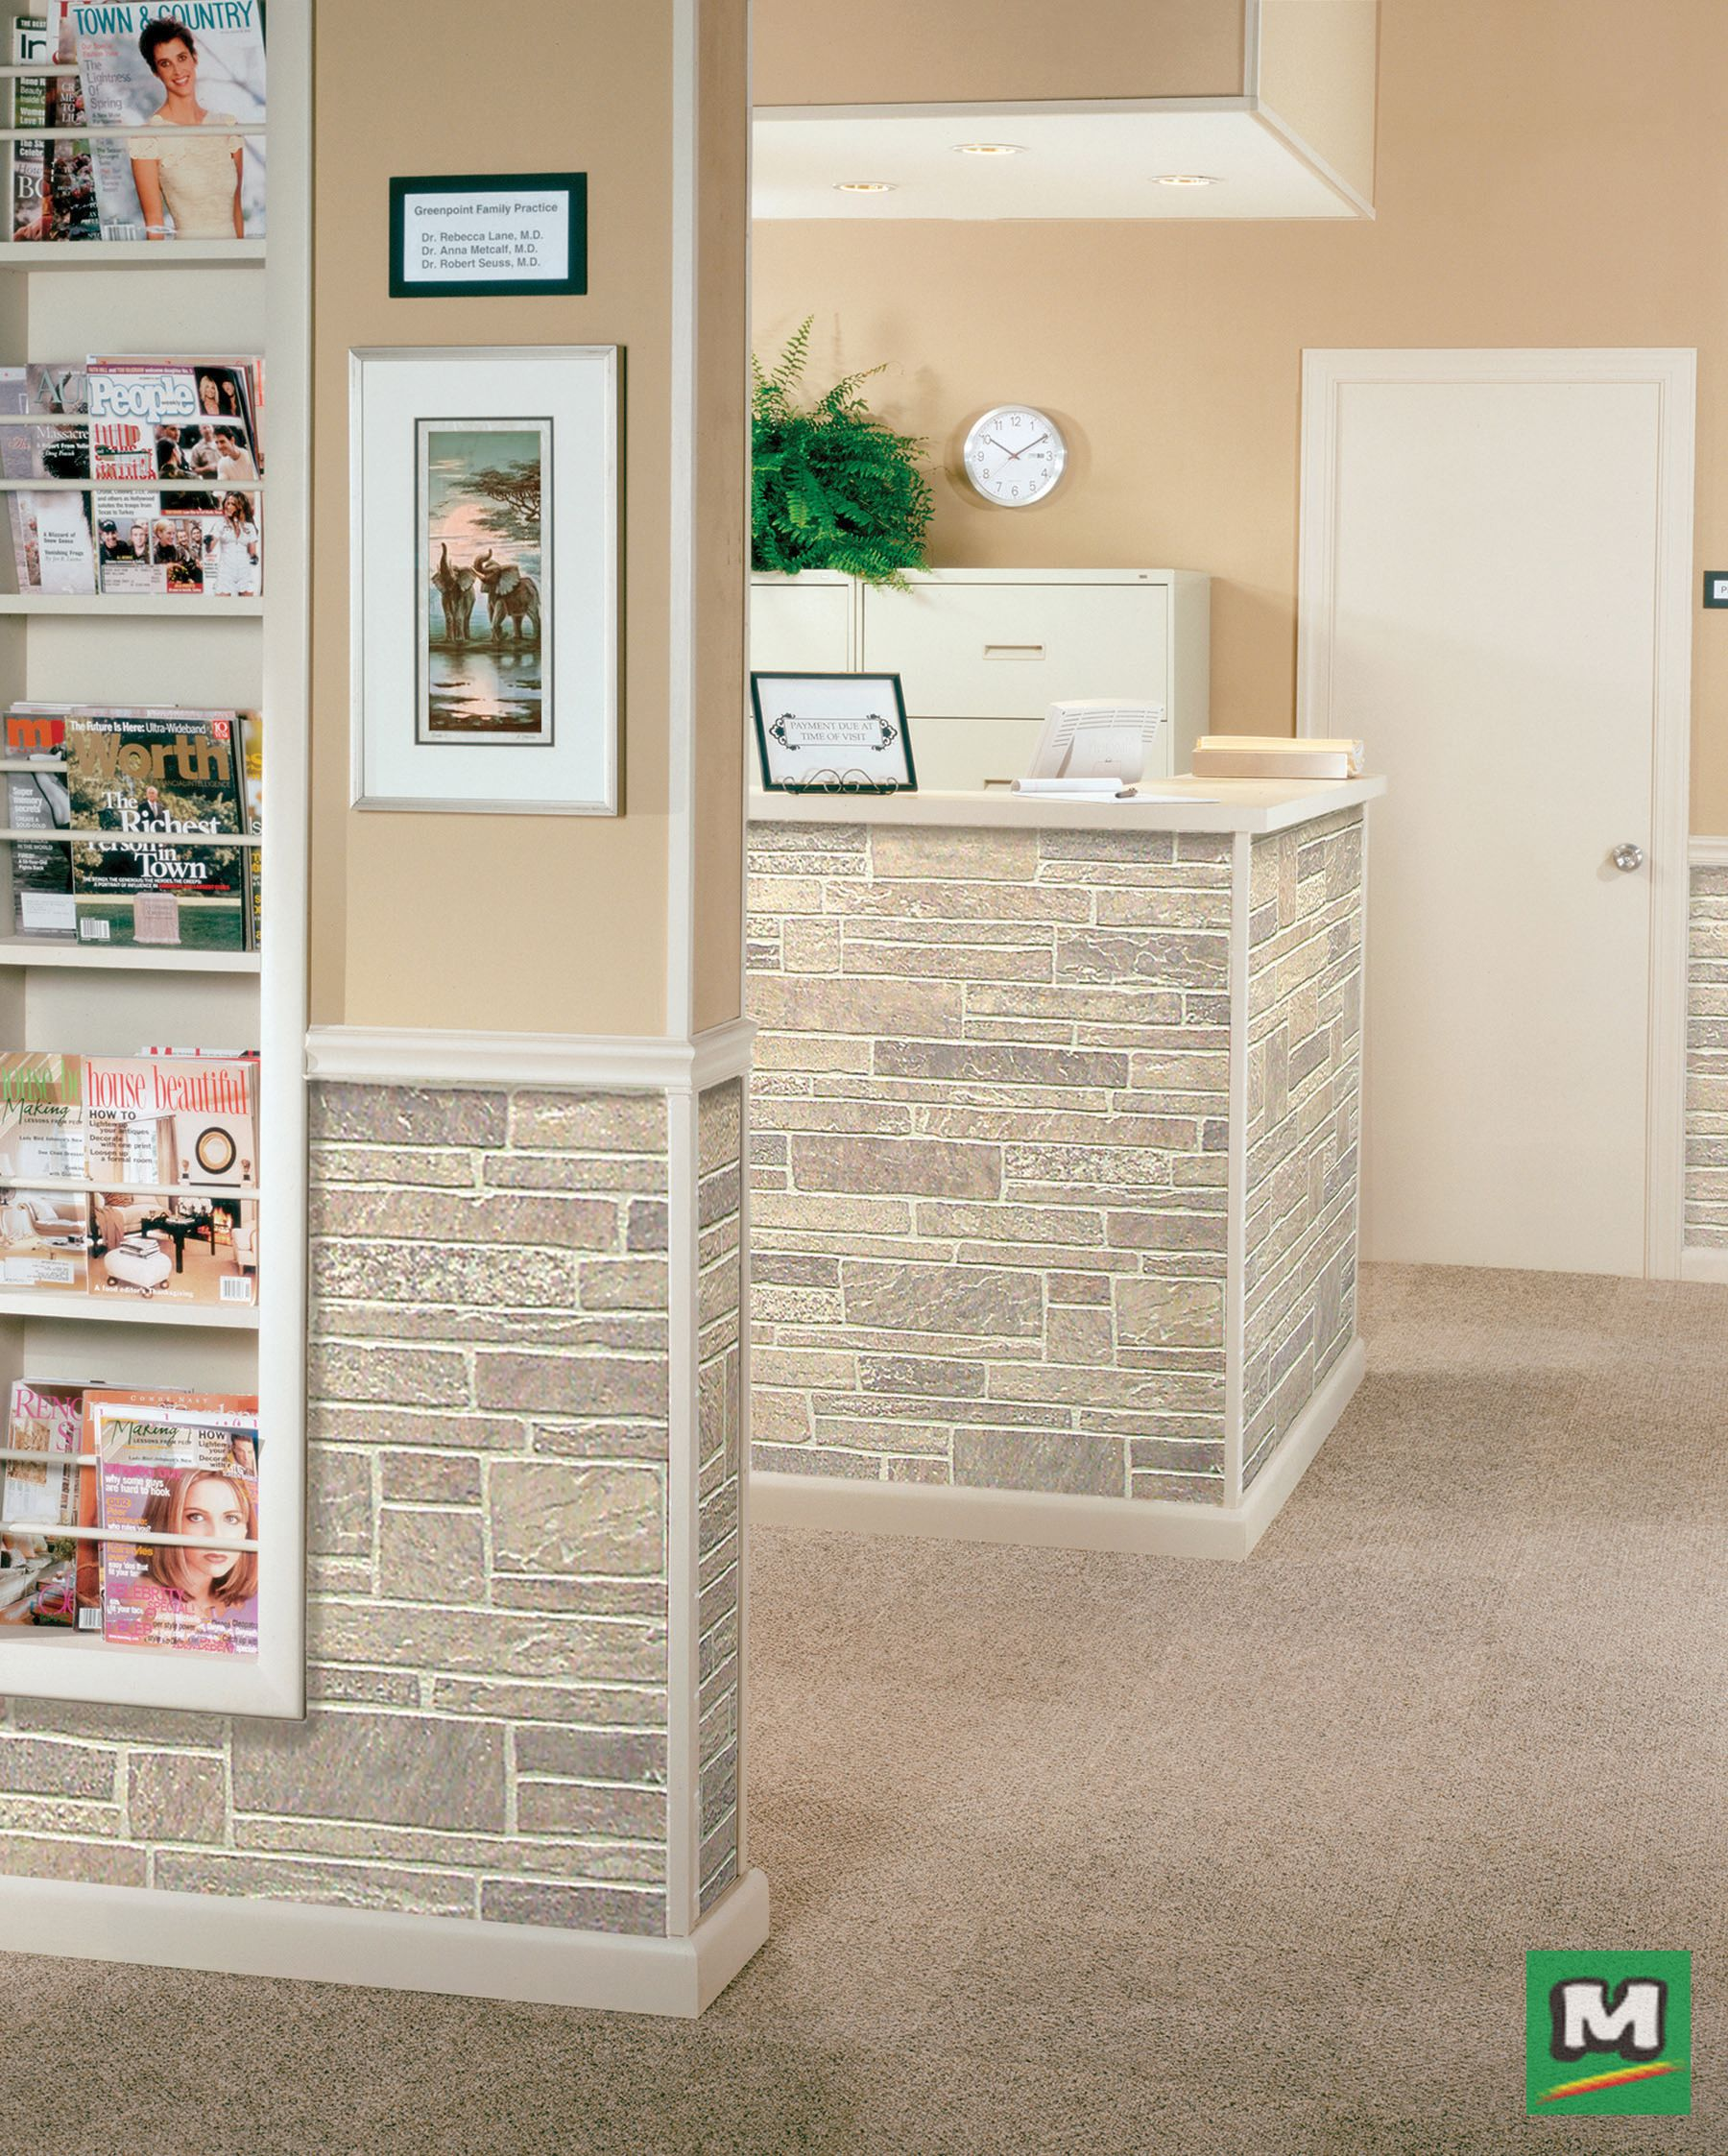 Enhance your home environment with DPI™ Earth Stones